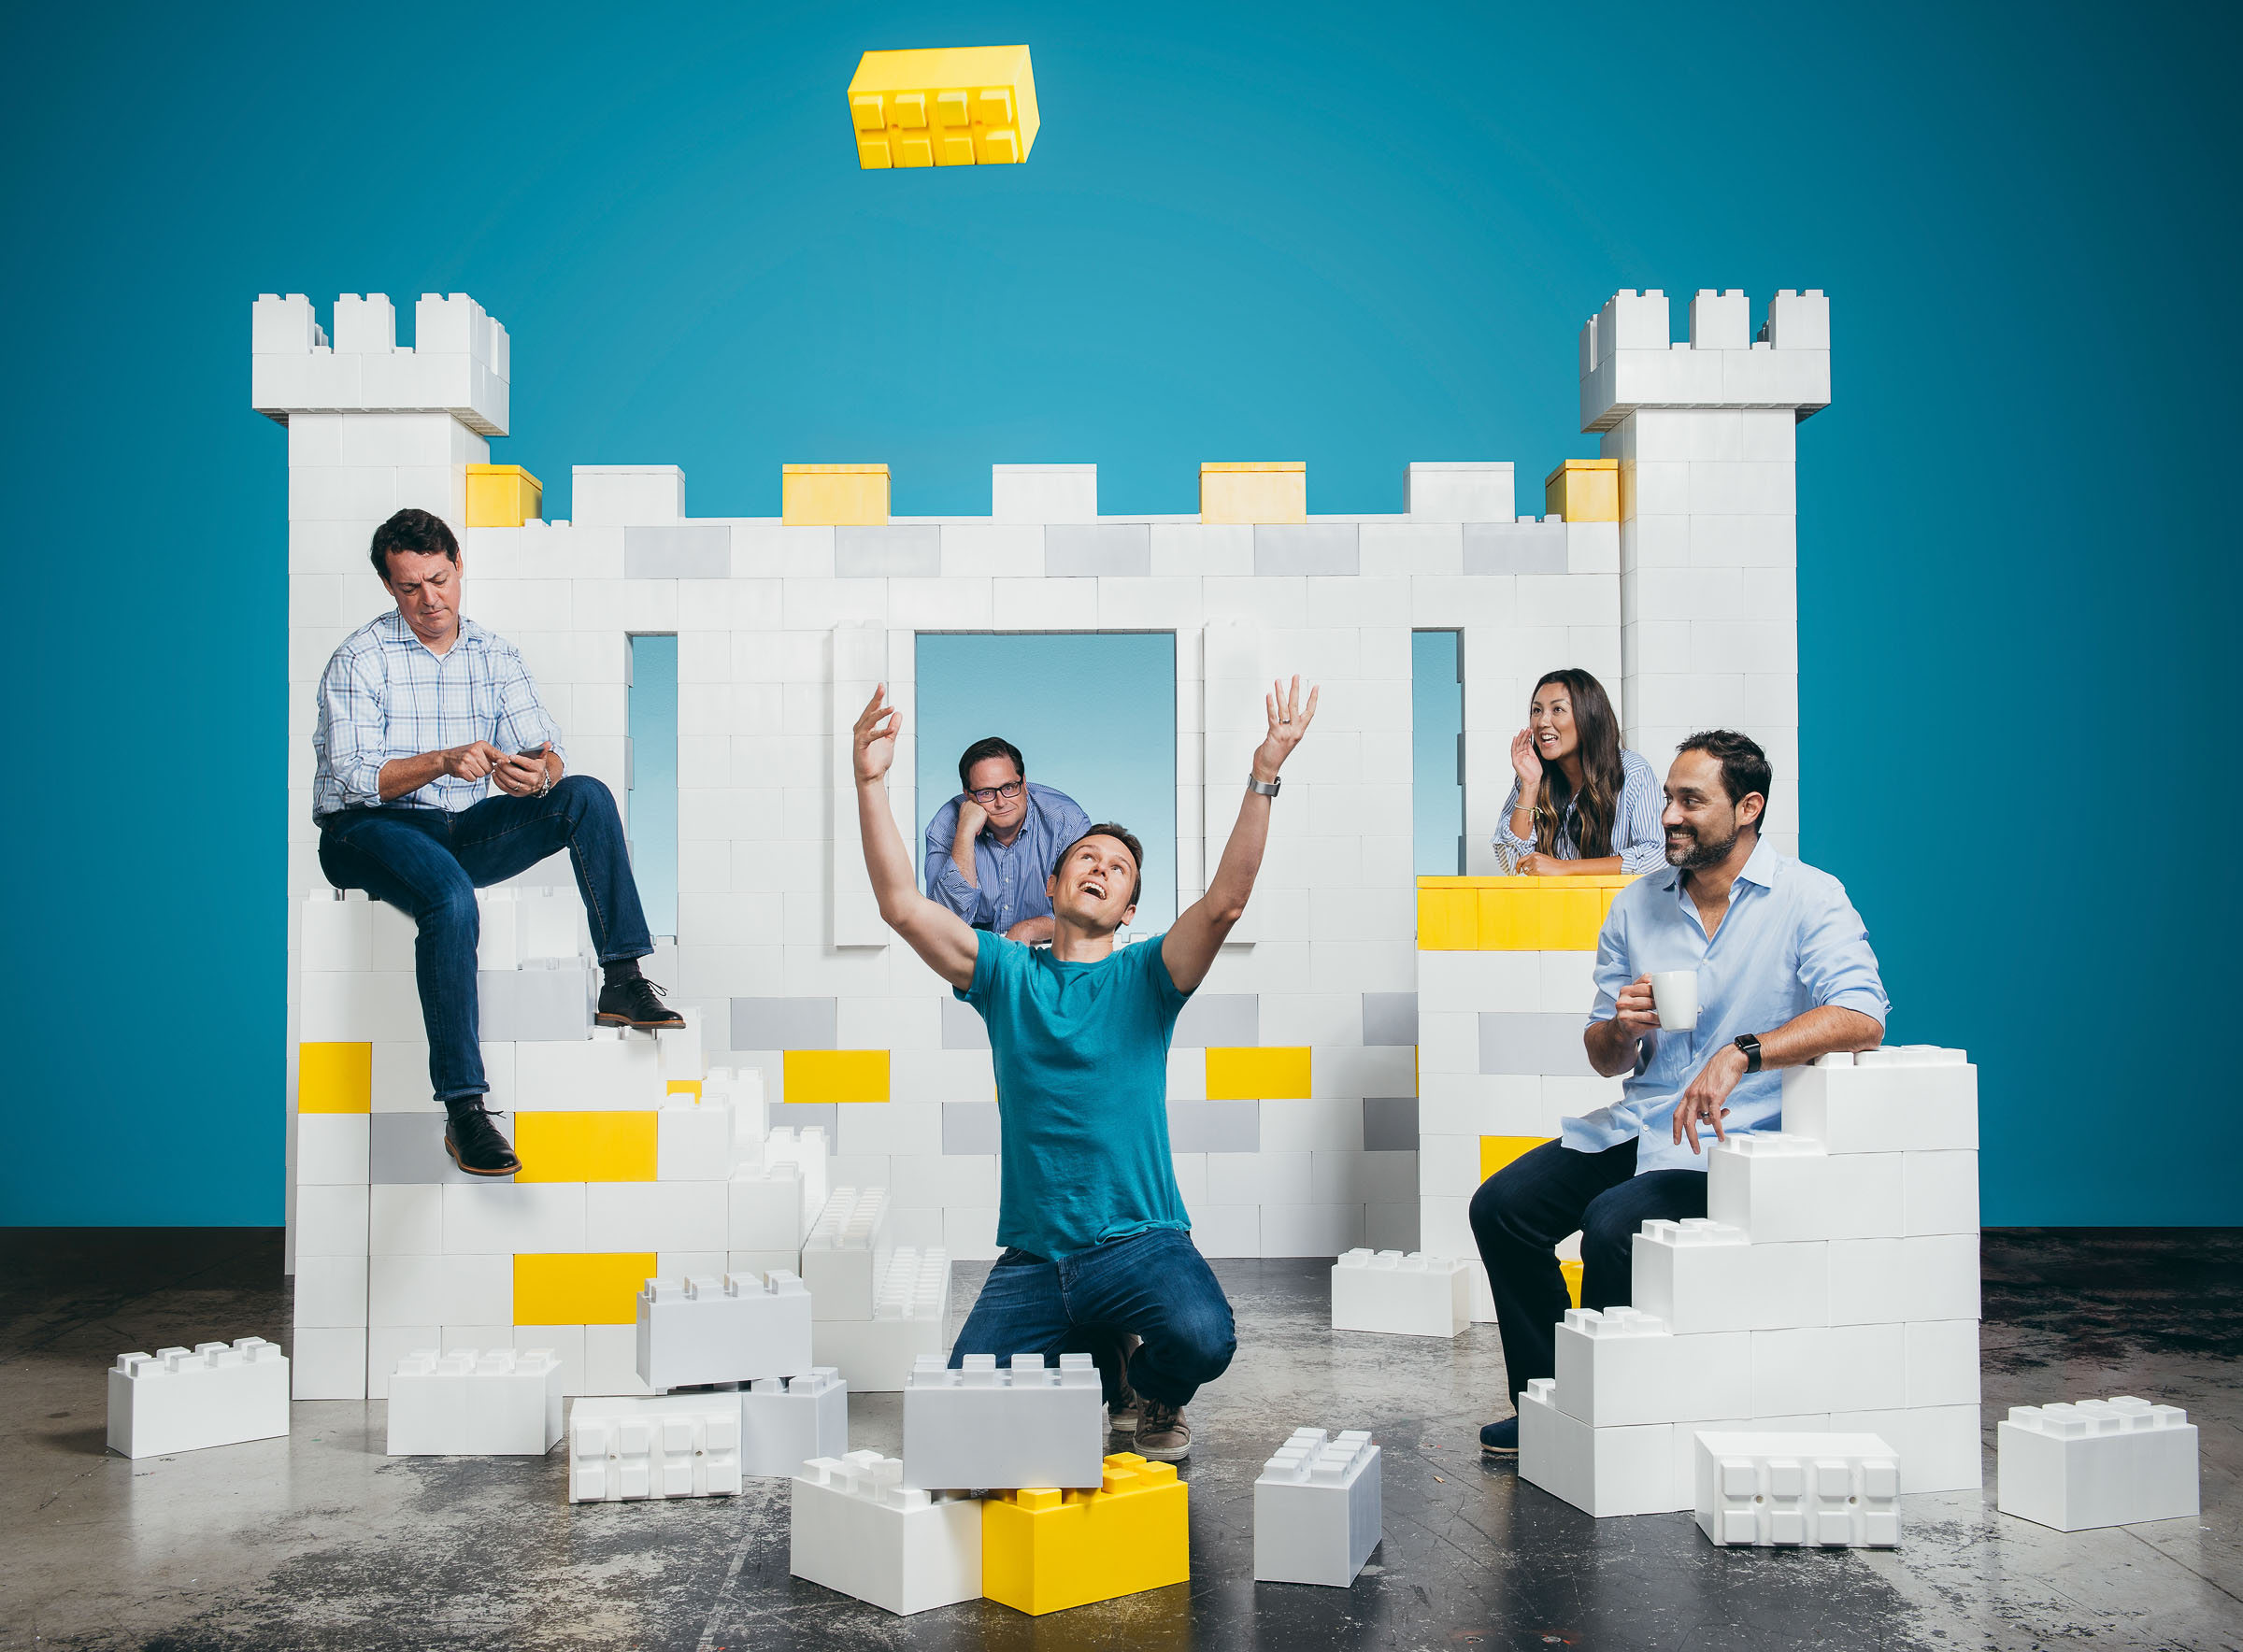 Corporate Lifestyle Photographer - Colleagues laughing at a giant Lego castle they have built.